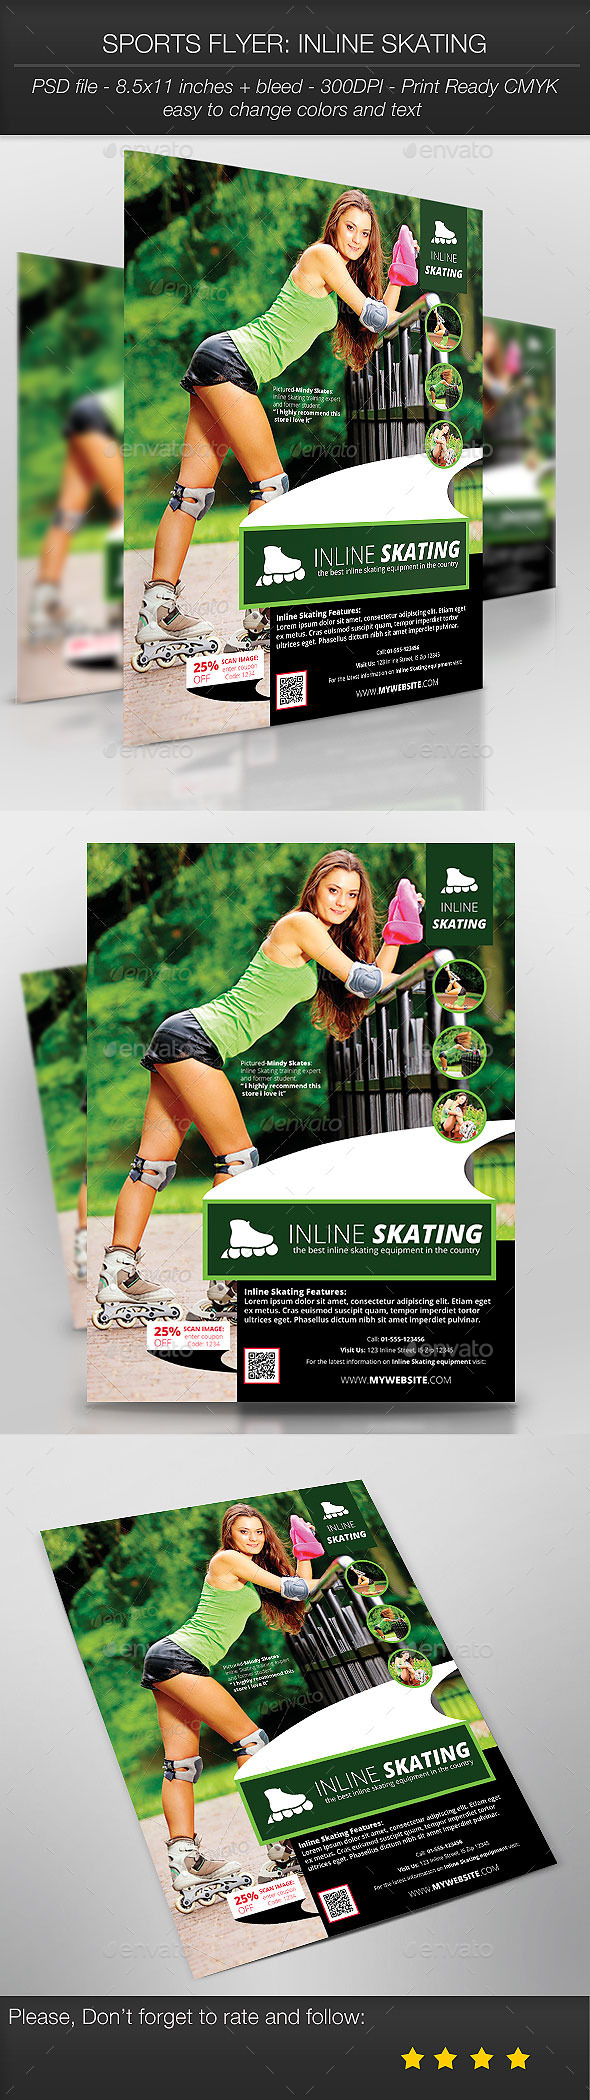 GraphicRiver Sports Flyer Inline Skating 9375426